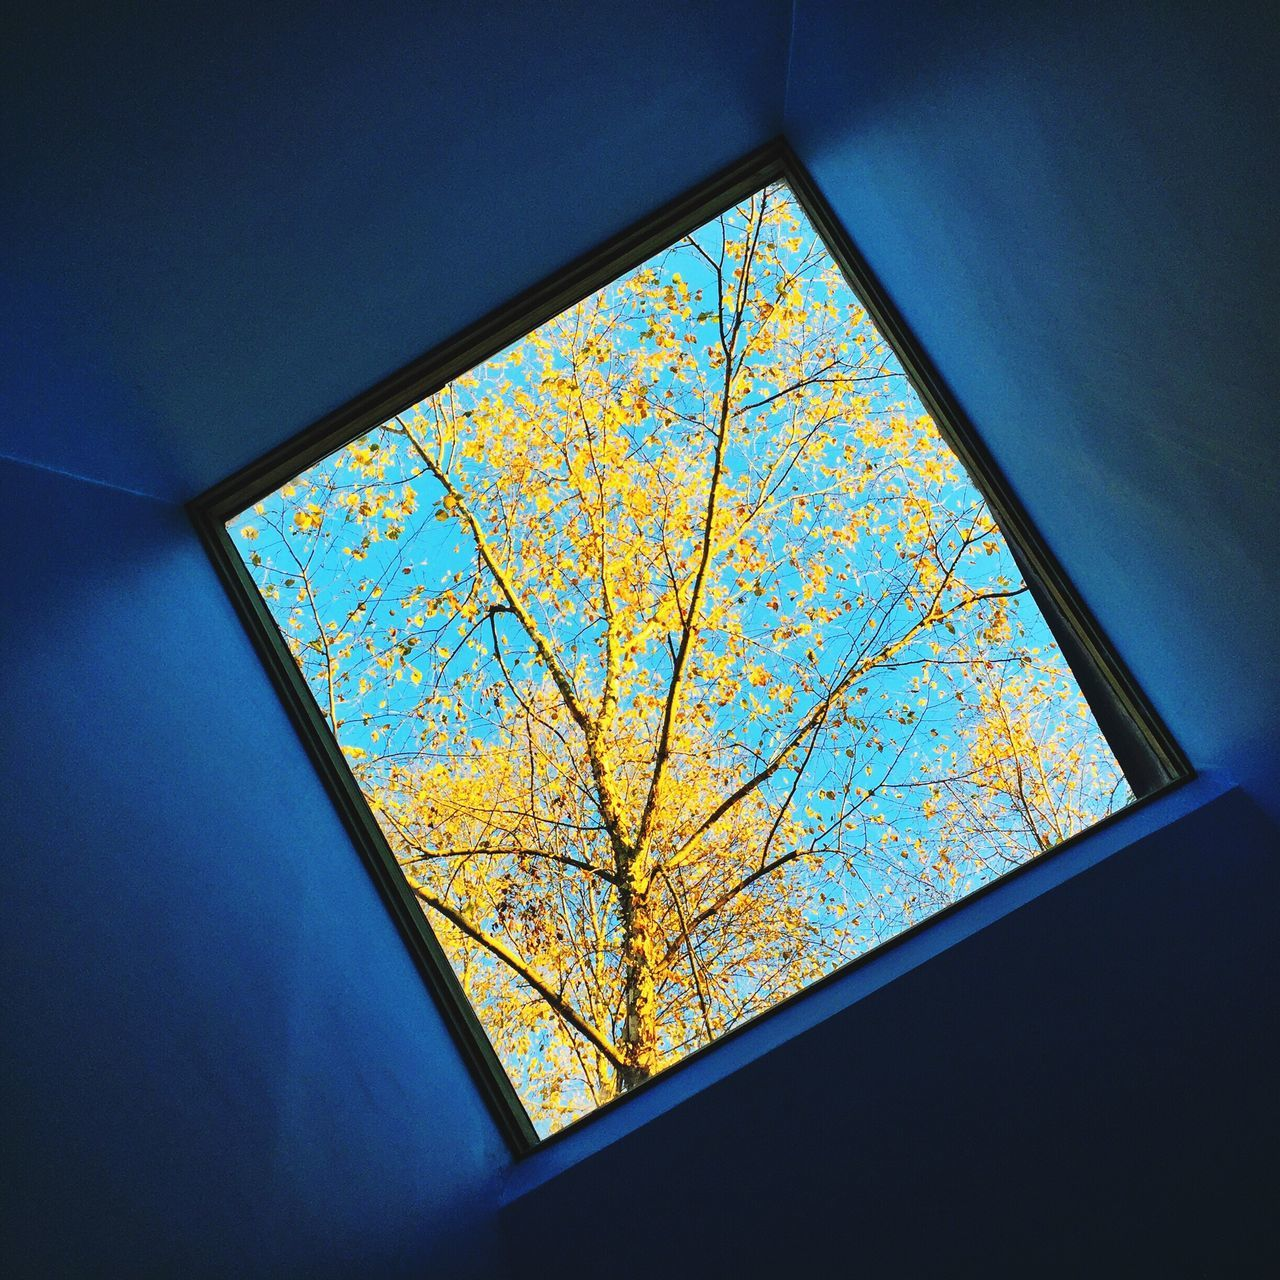 Window Skylight Indoors  Day Low Angle View Tree Nature No People Exploring Style Beauty In Nature Autumn EyeEm Best Shots Minimalism Blue Yellow Leaves Lookingup Fine Art Blue Sky Architectural Detail Architectural Feature